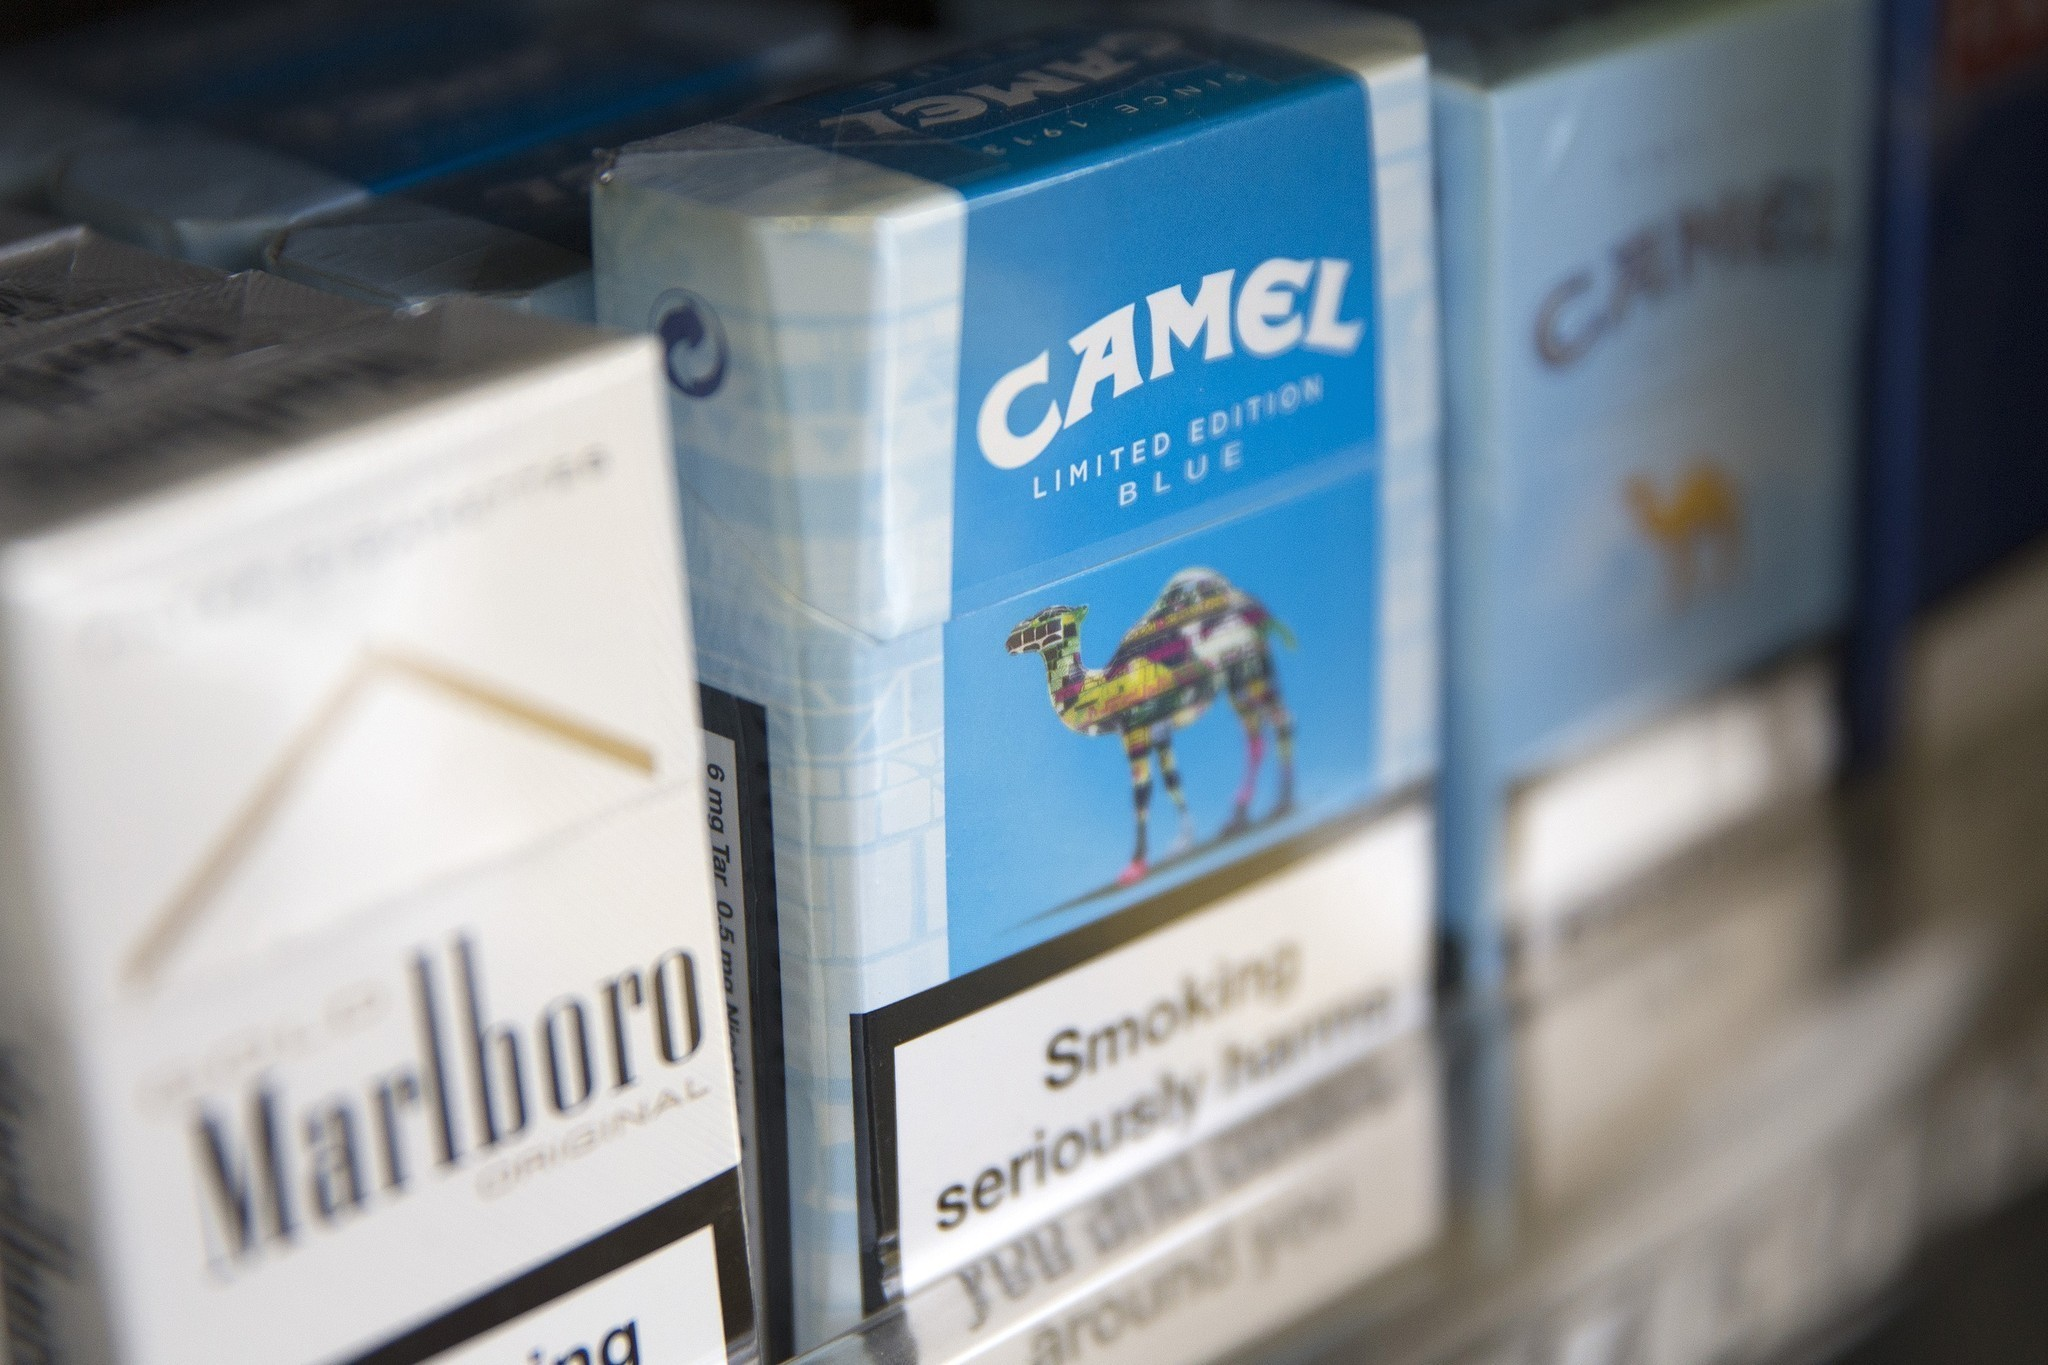 Cigarette giant Reynolds American in talks to acquire rival Lorillard